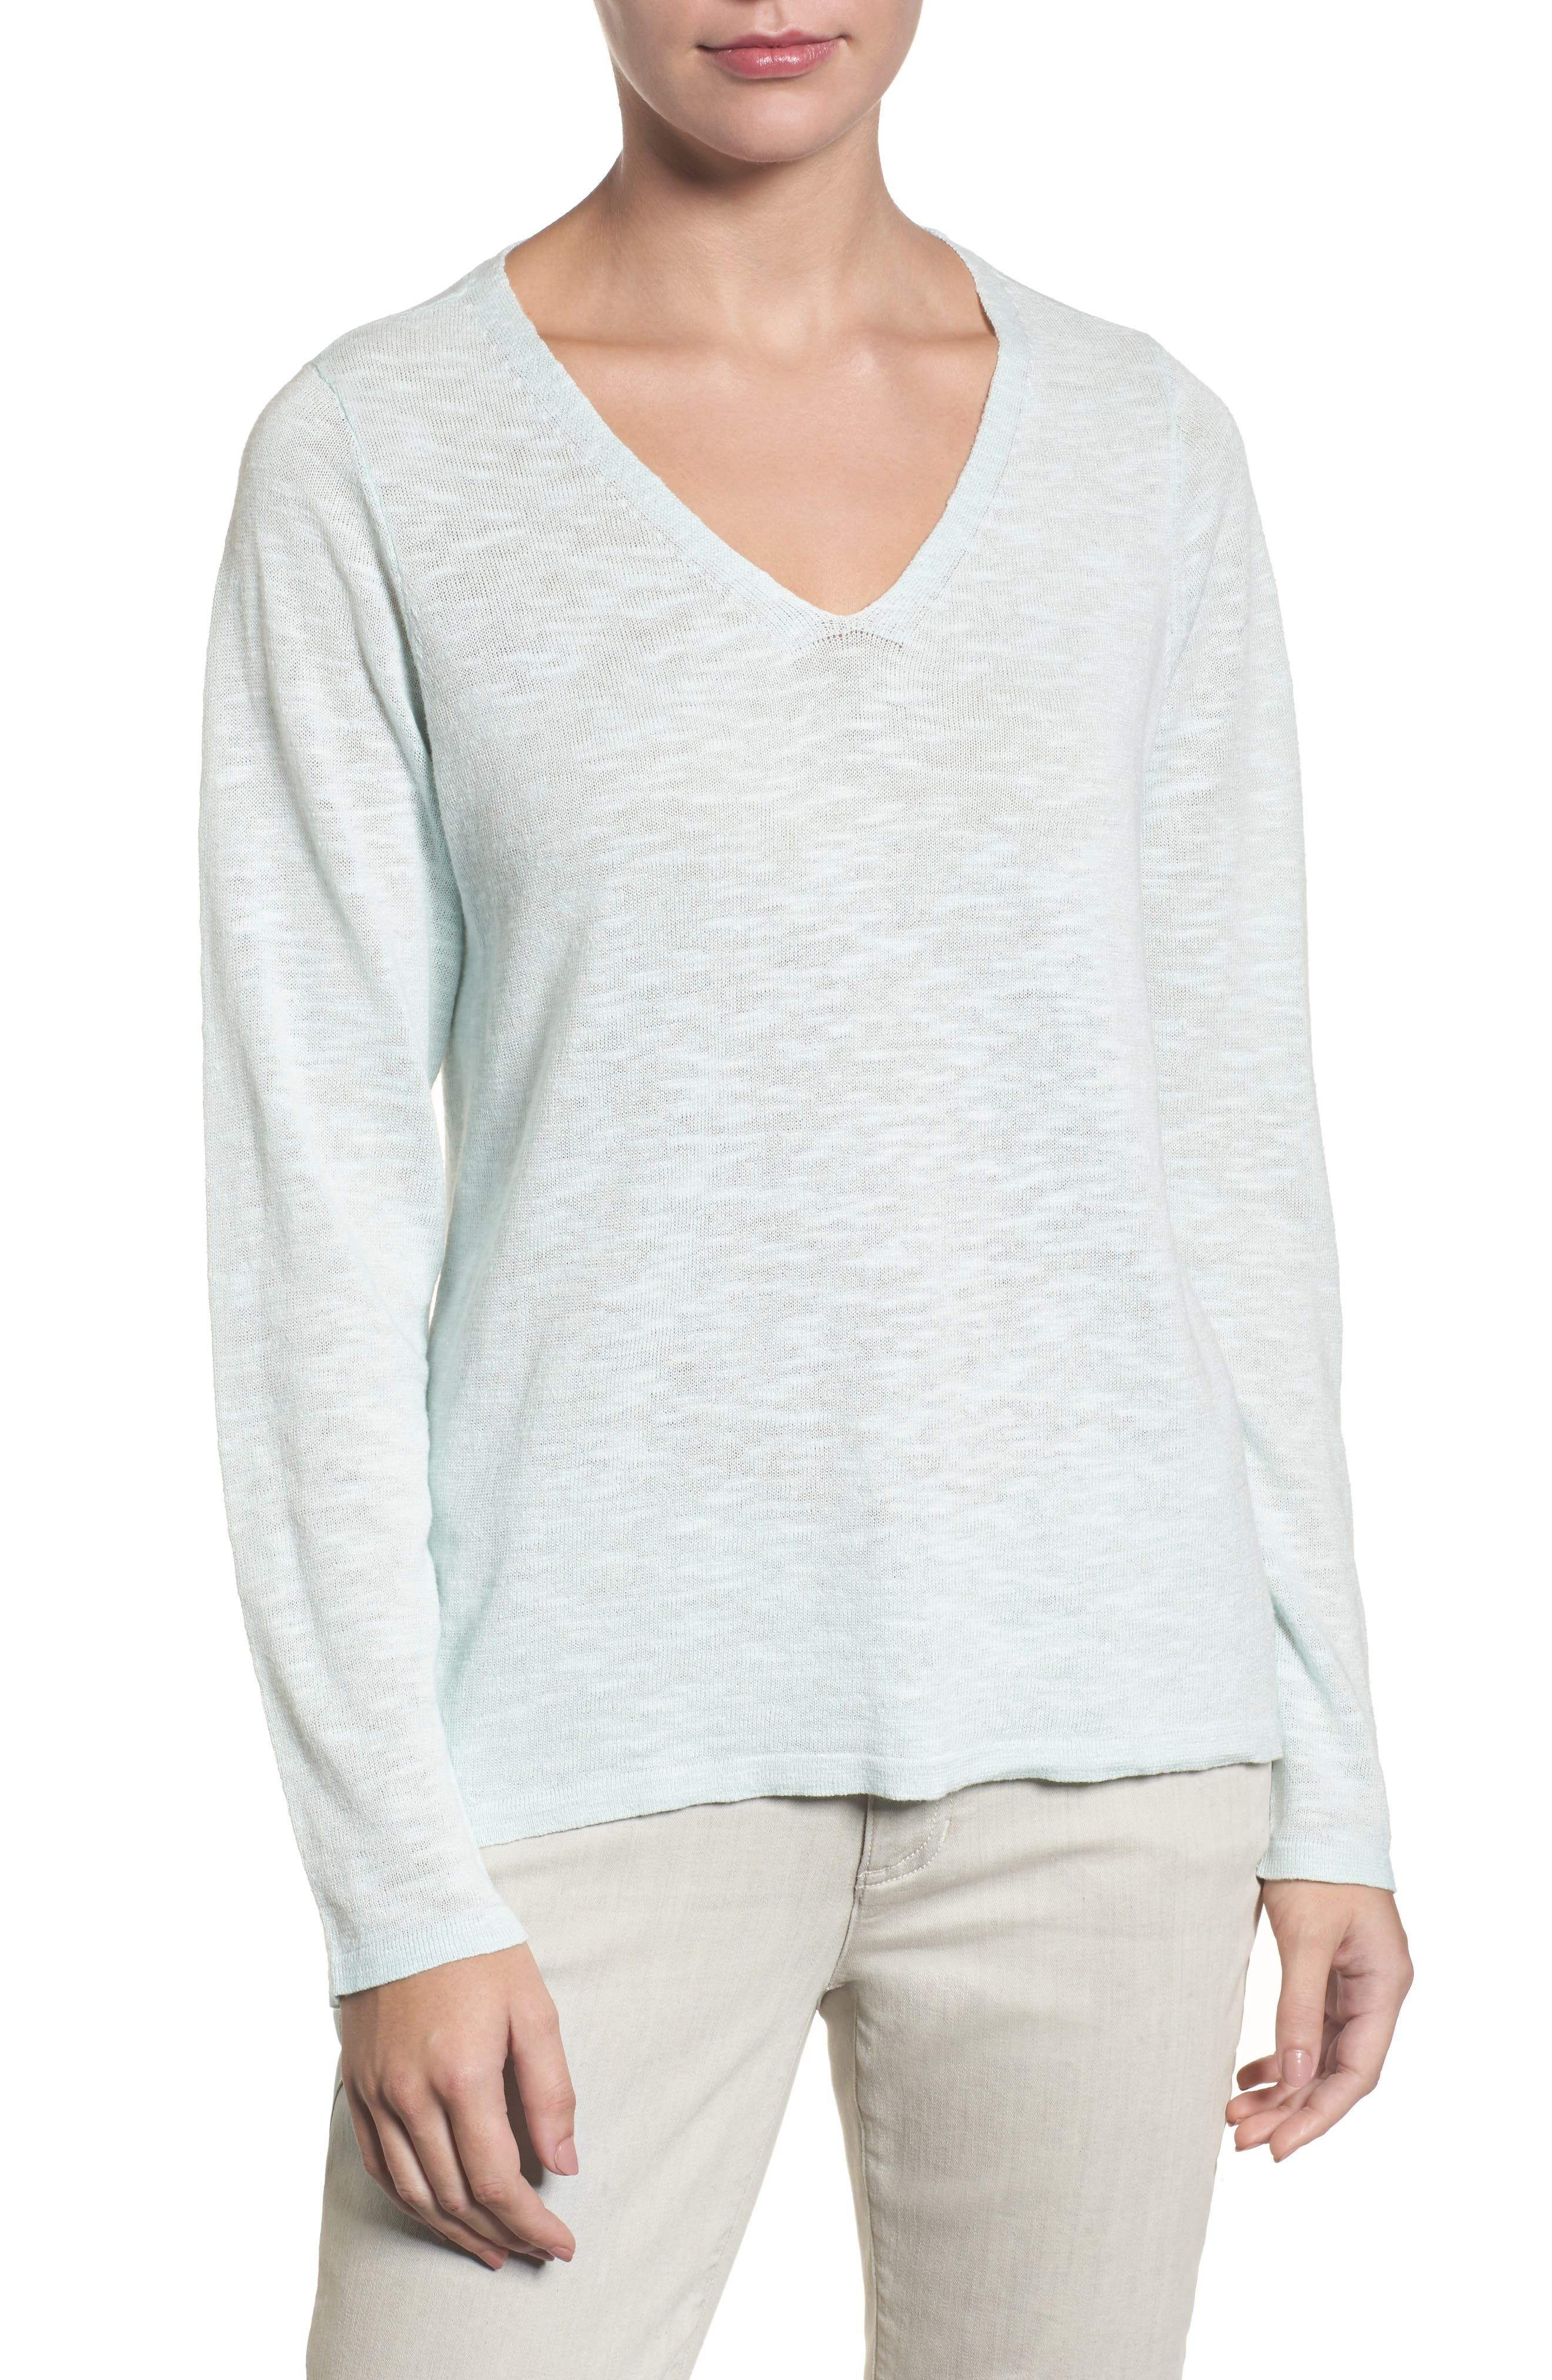 Alternate Image 1 Selected - Eileen Fisher Organic Linen & Cotton V-Neck Sweater